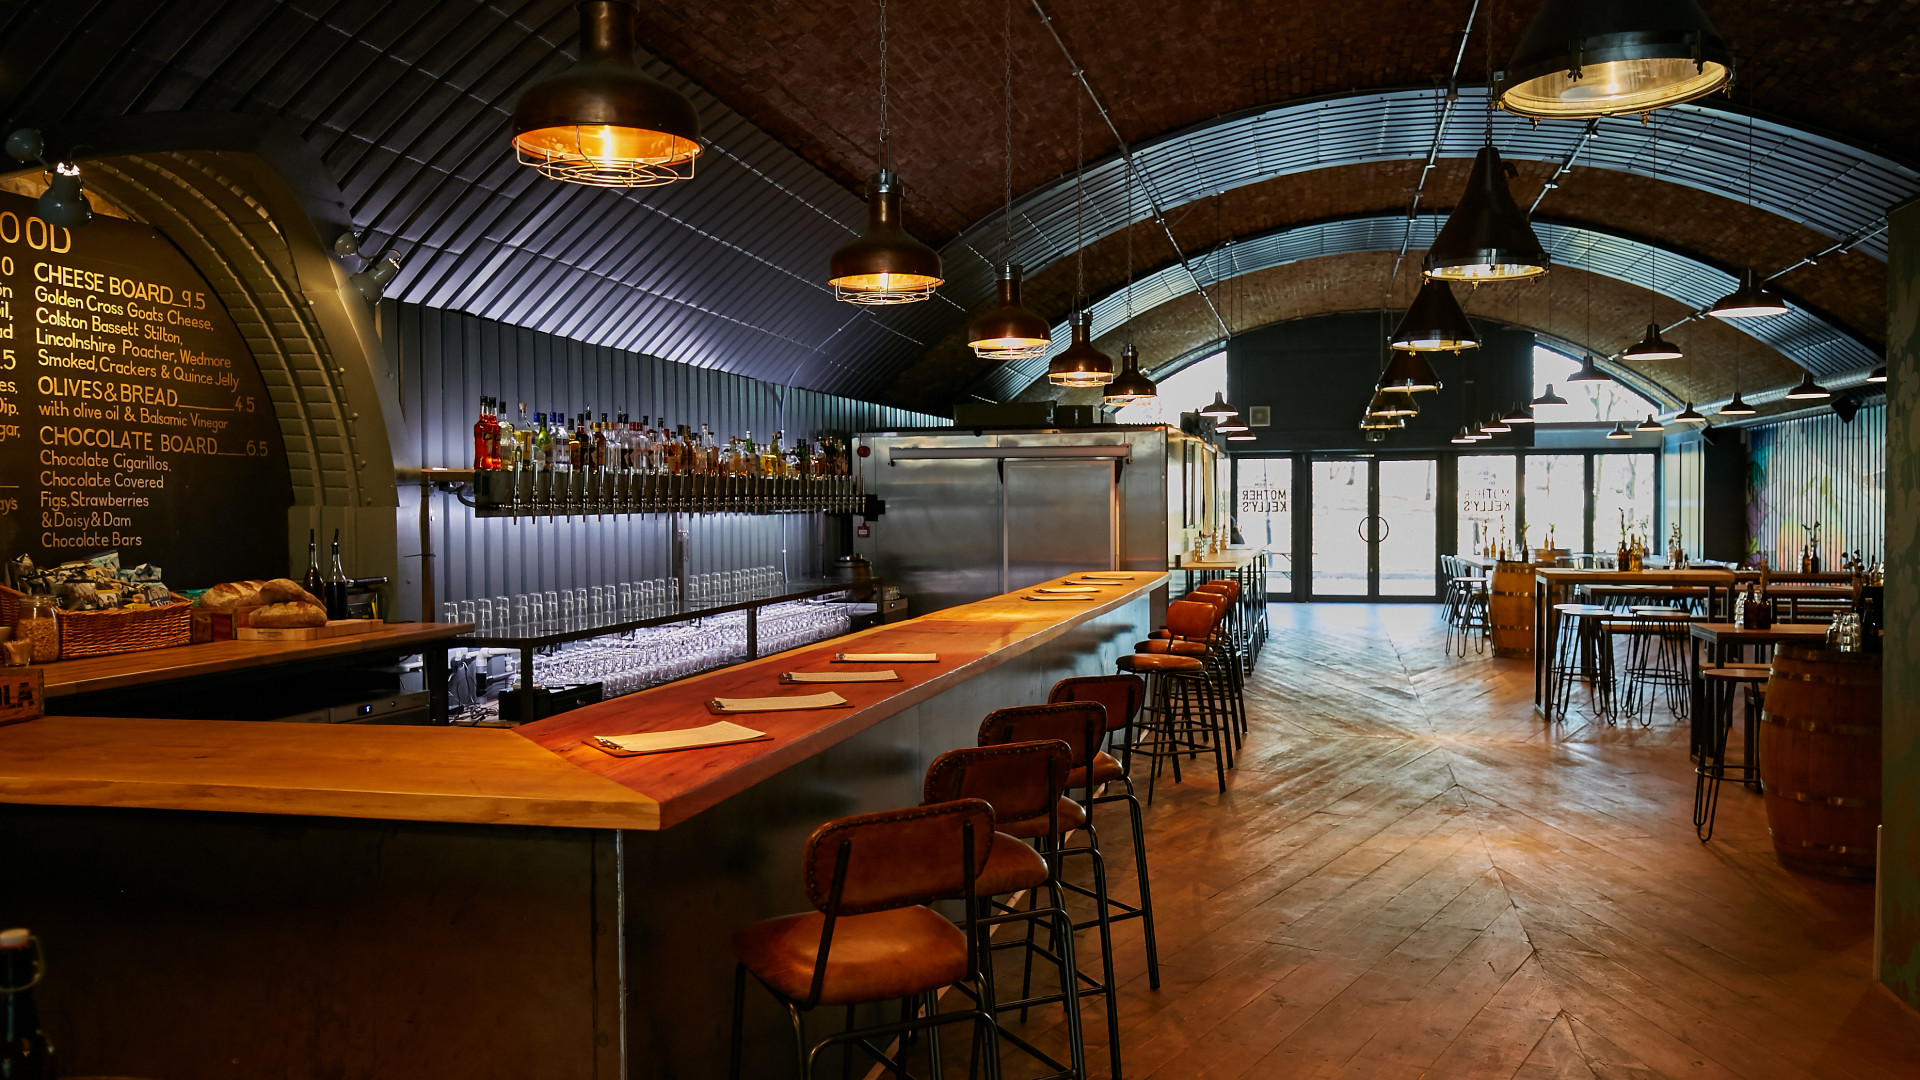 The bar at Mother Kelly's taproom in Vauxhall